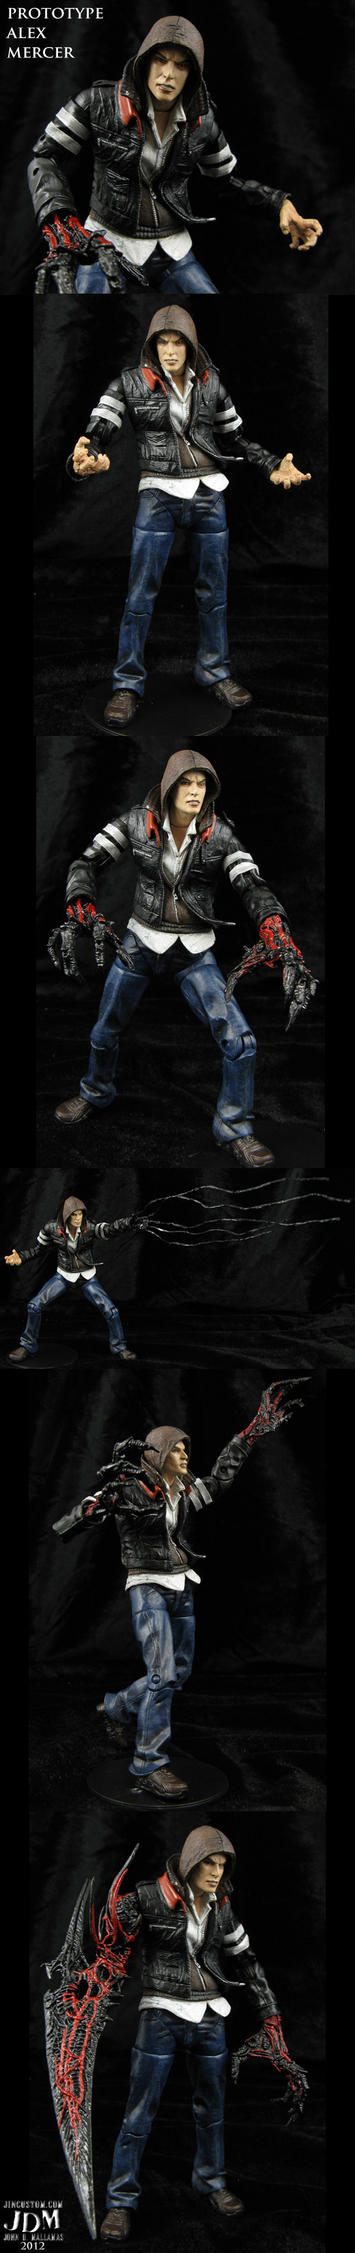 Custom Alex Mercer Prototype action figure by Jin-Saotome